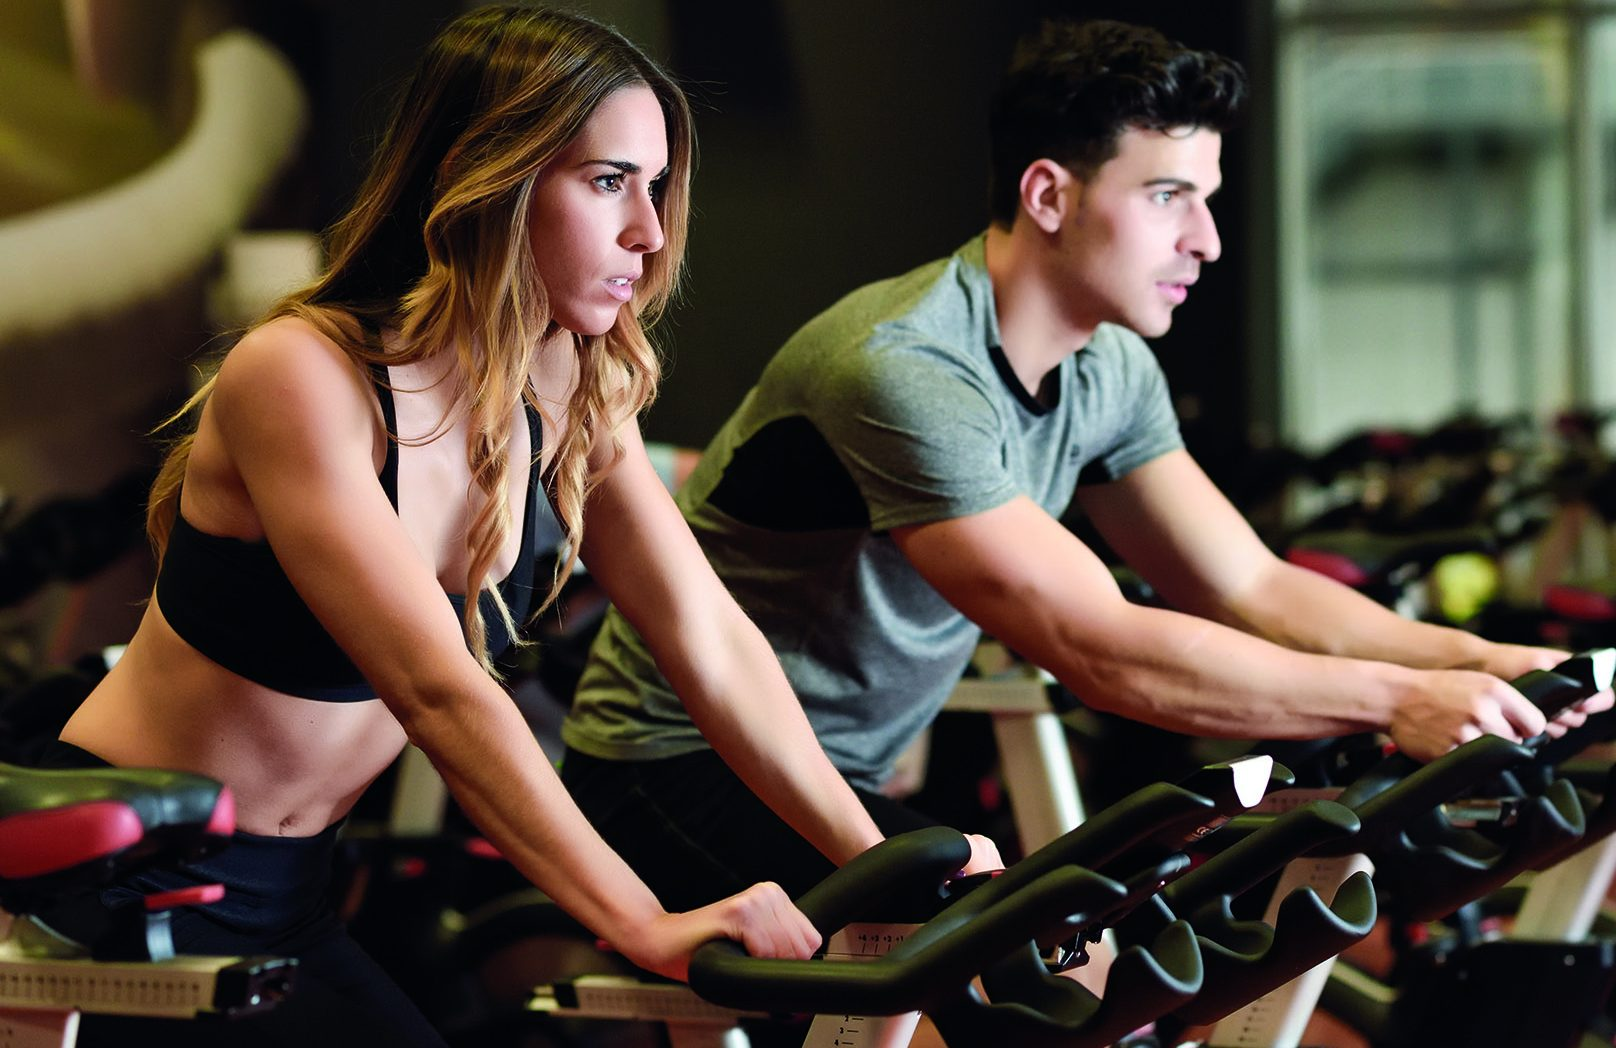 Woman and man on spinning bikes - Peake Fitness